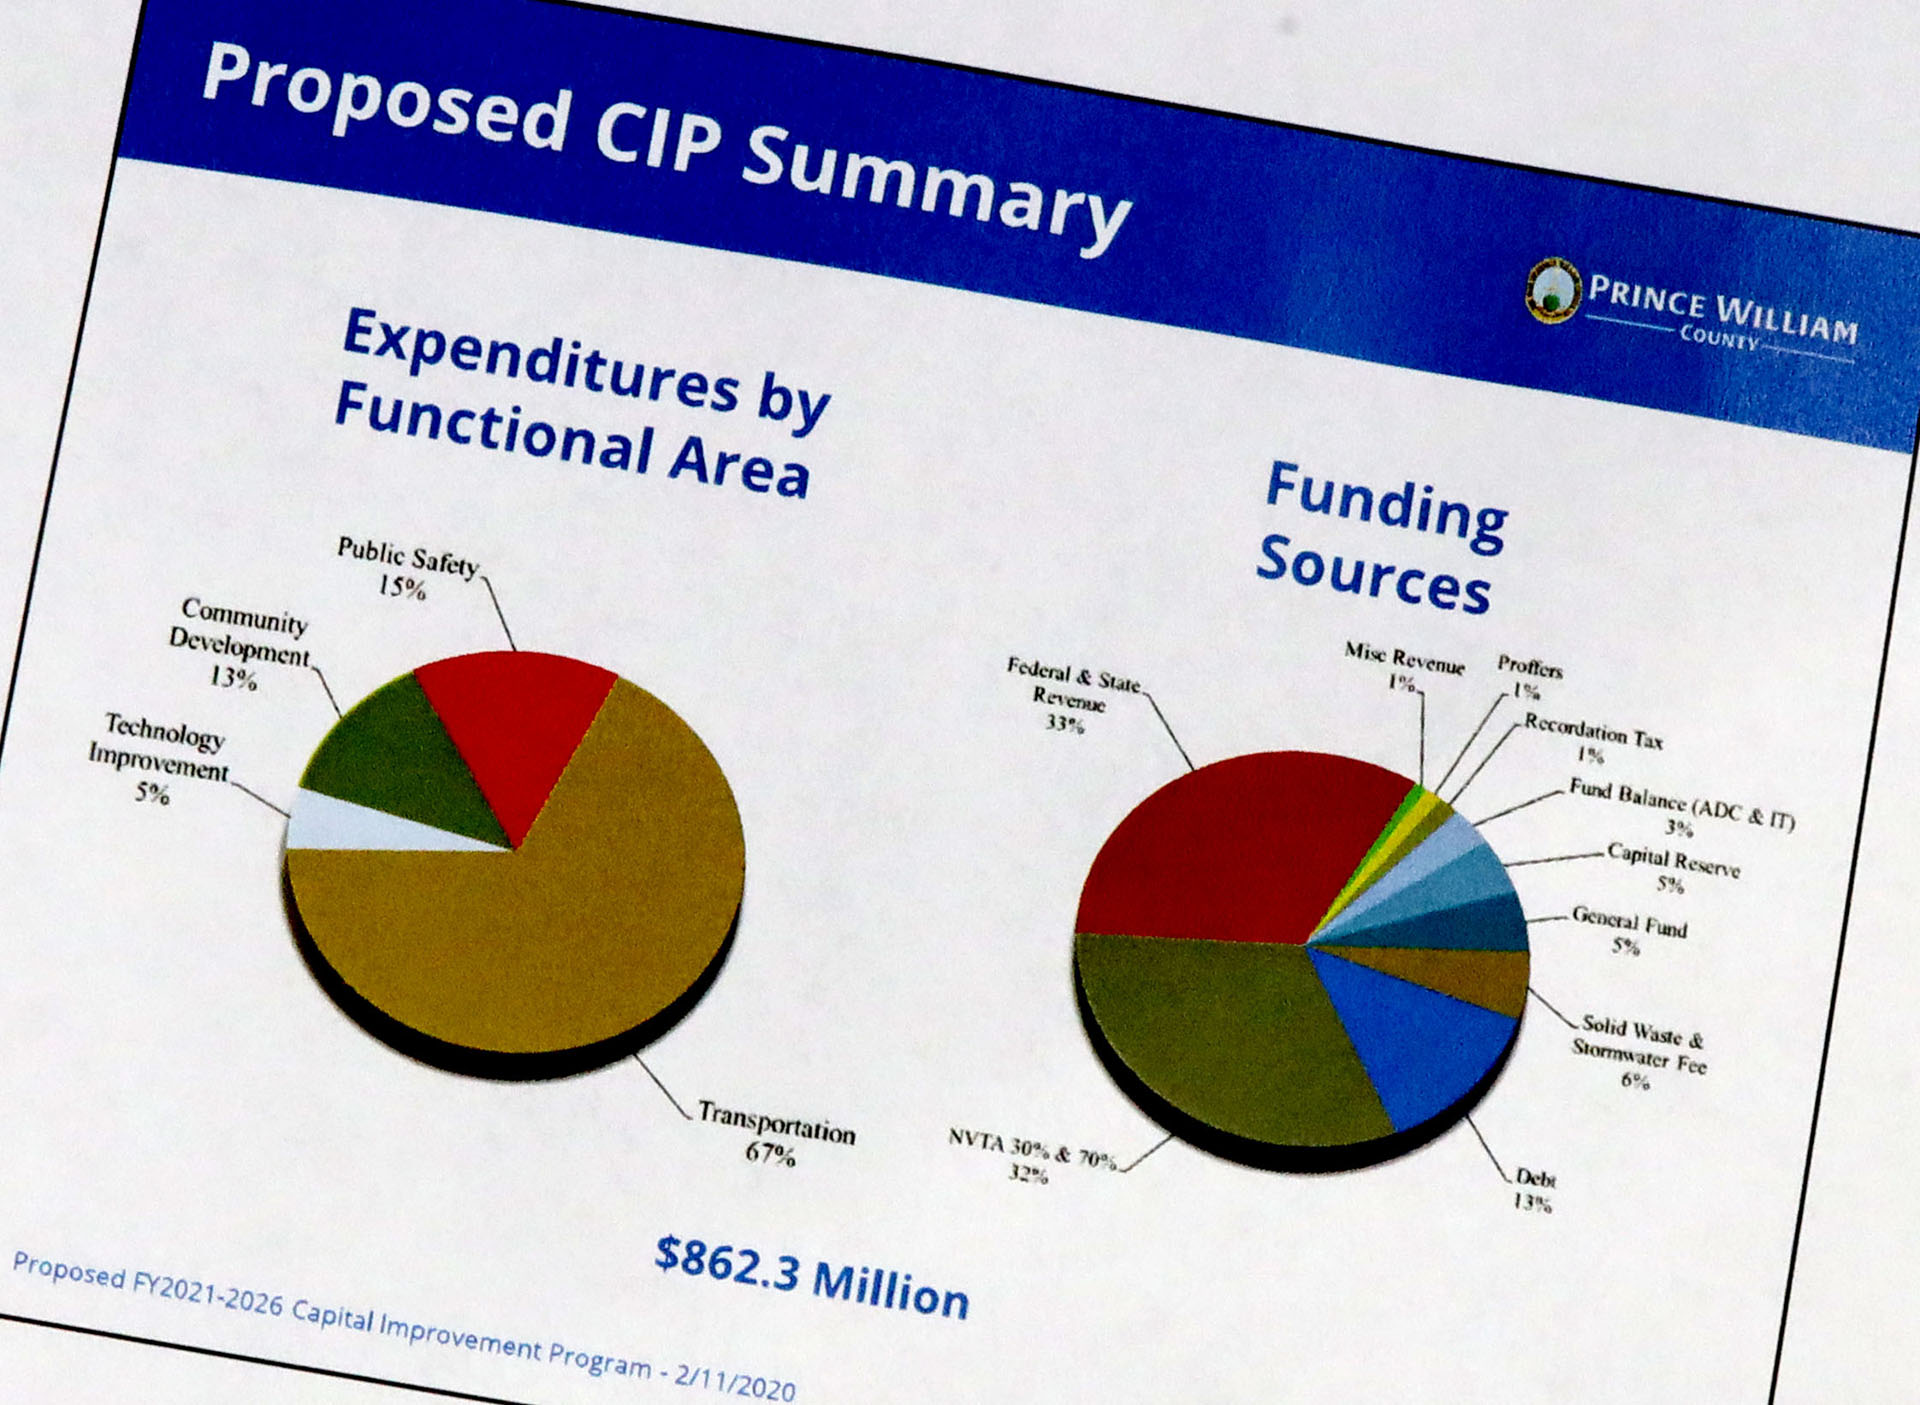 Budget schedule set by Prince William County